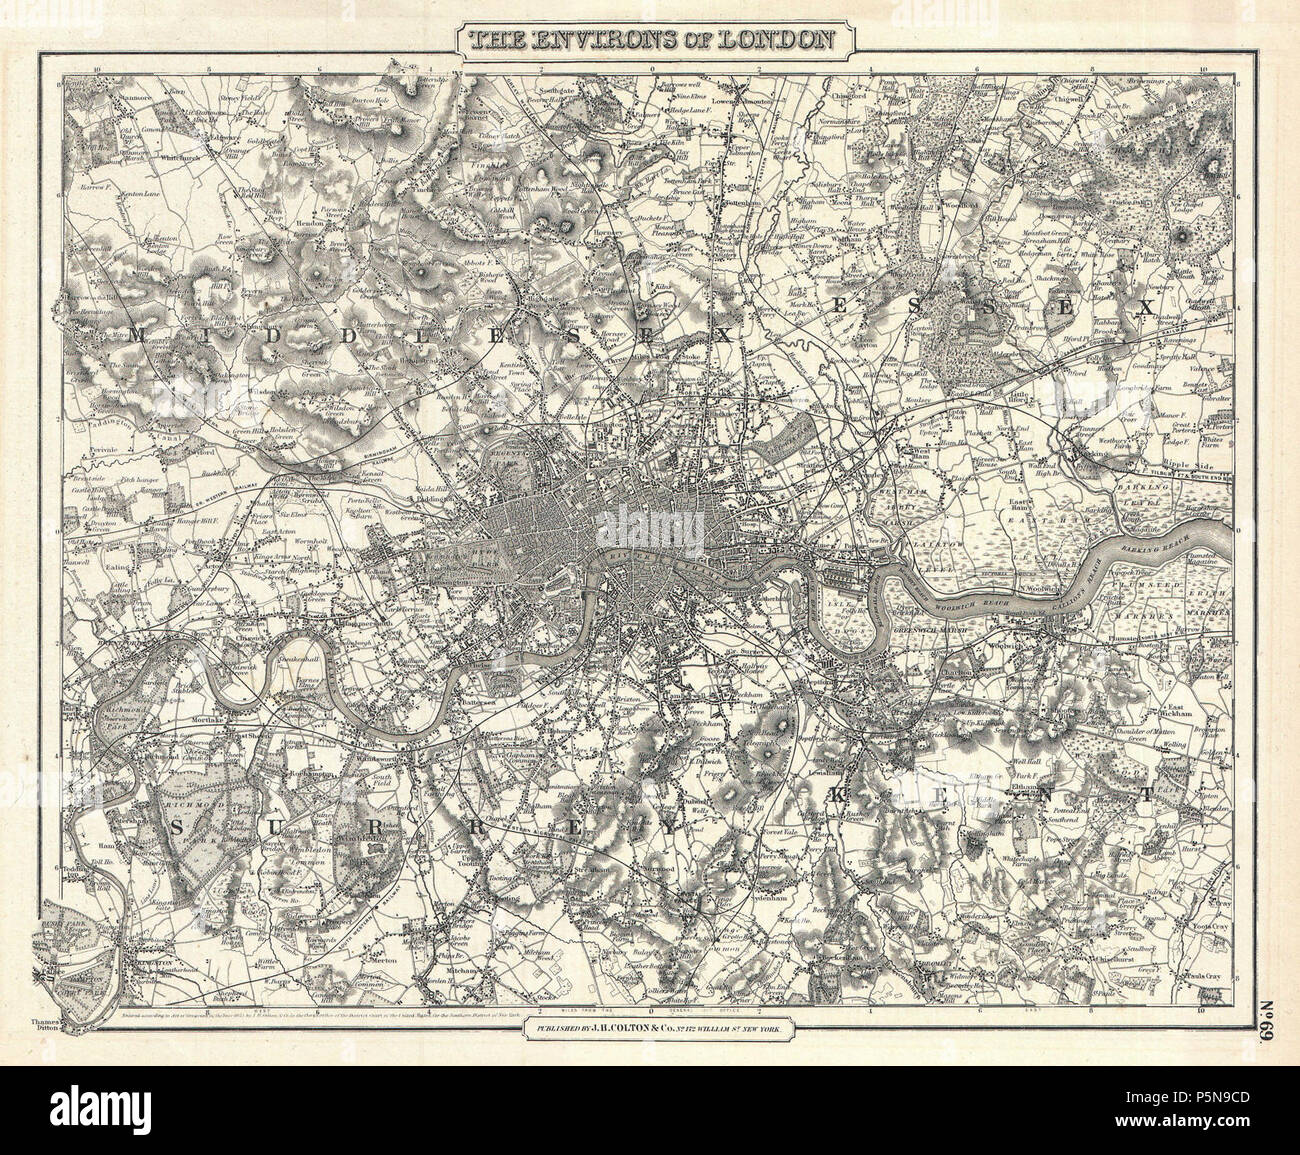 1855 Colton Map of London, England - Geographicus - London-cbl-1855. - Stock Image